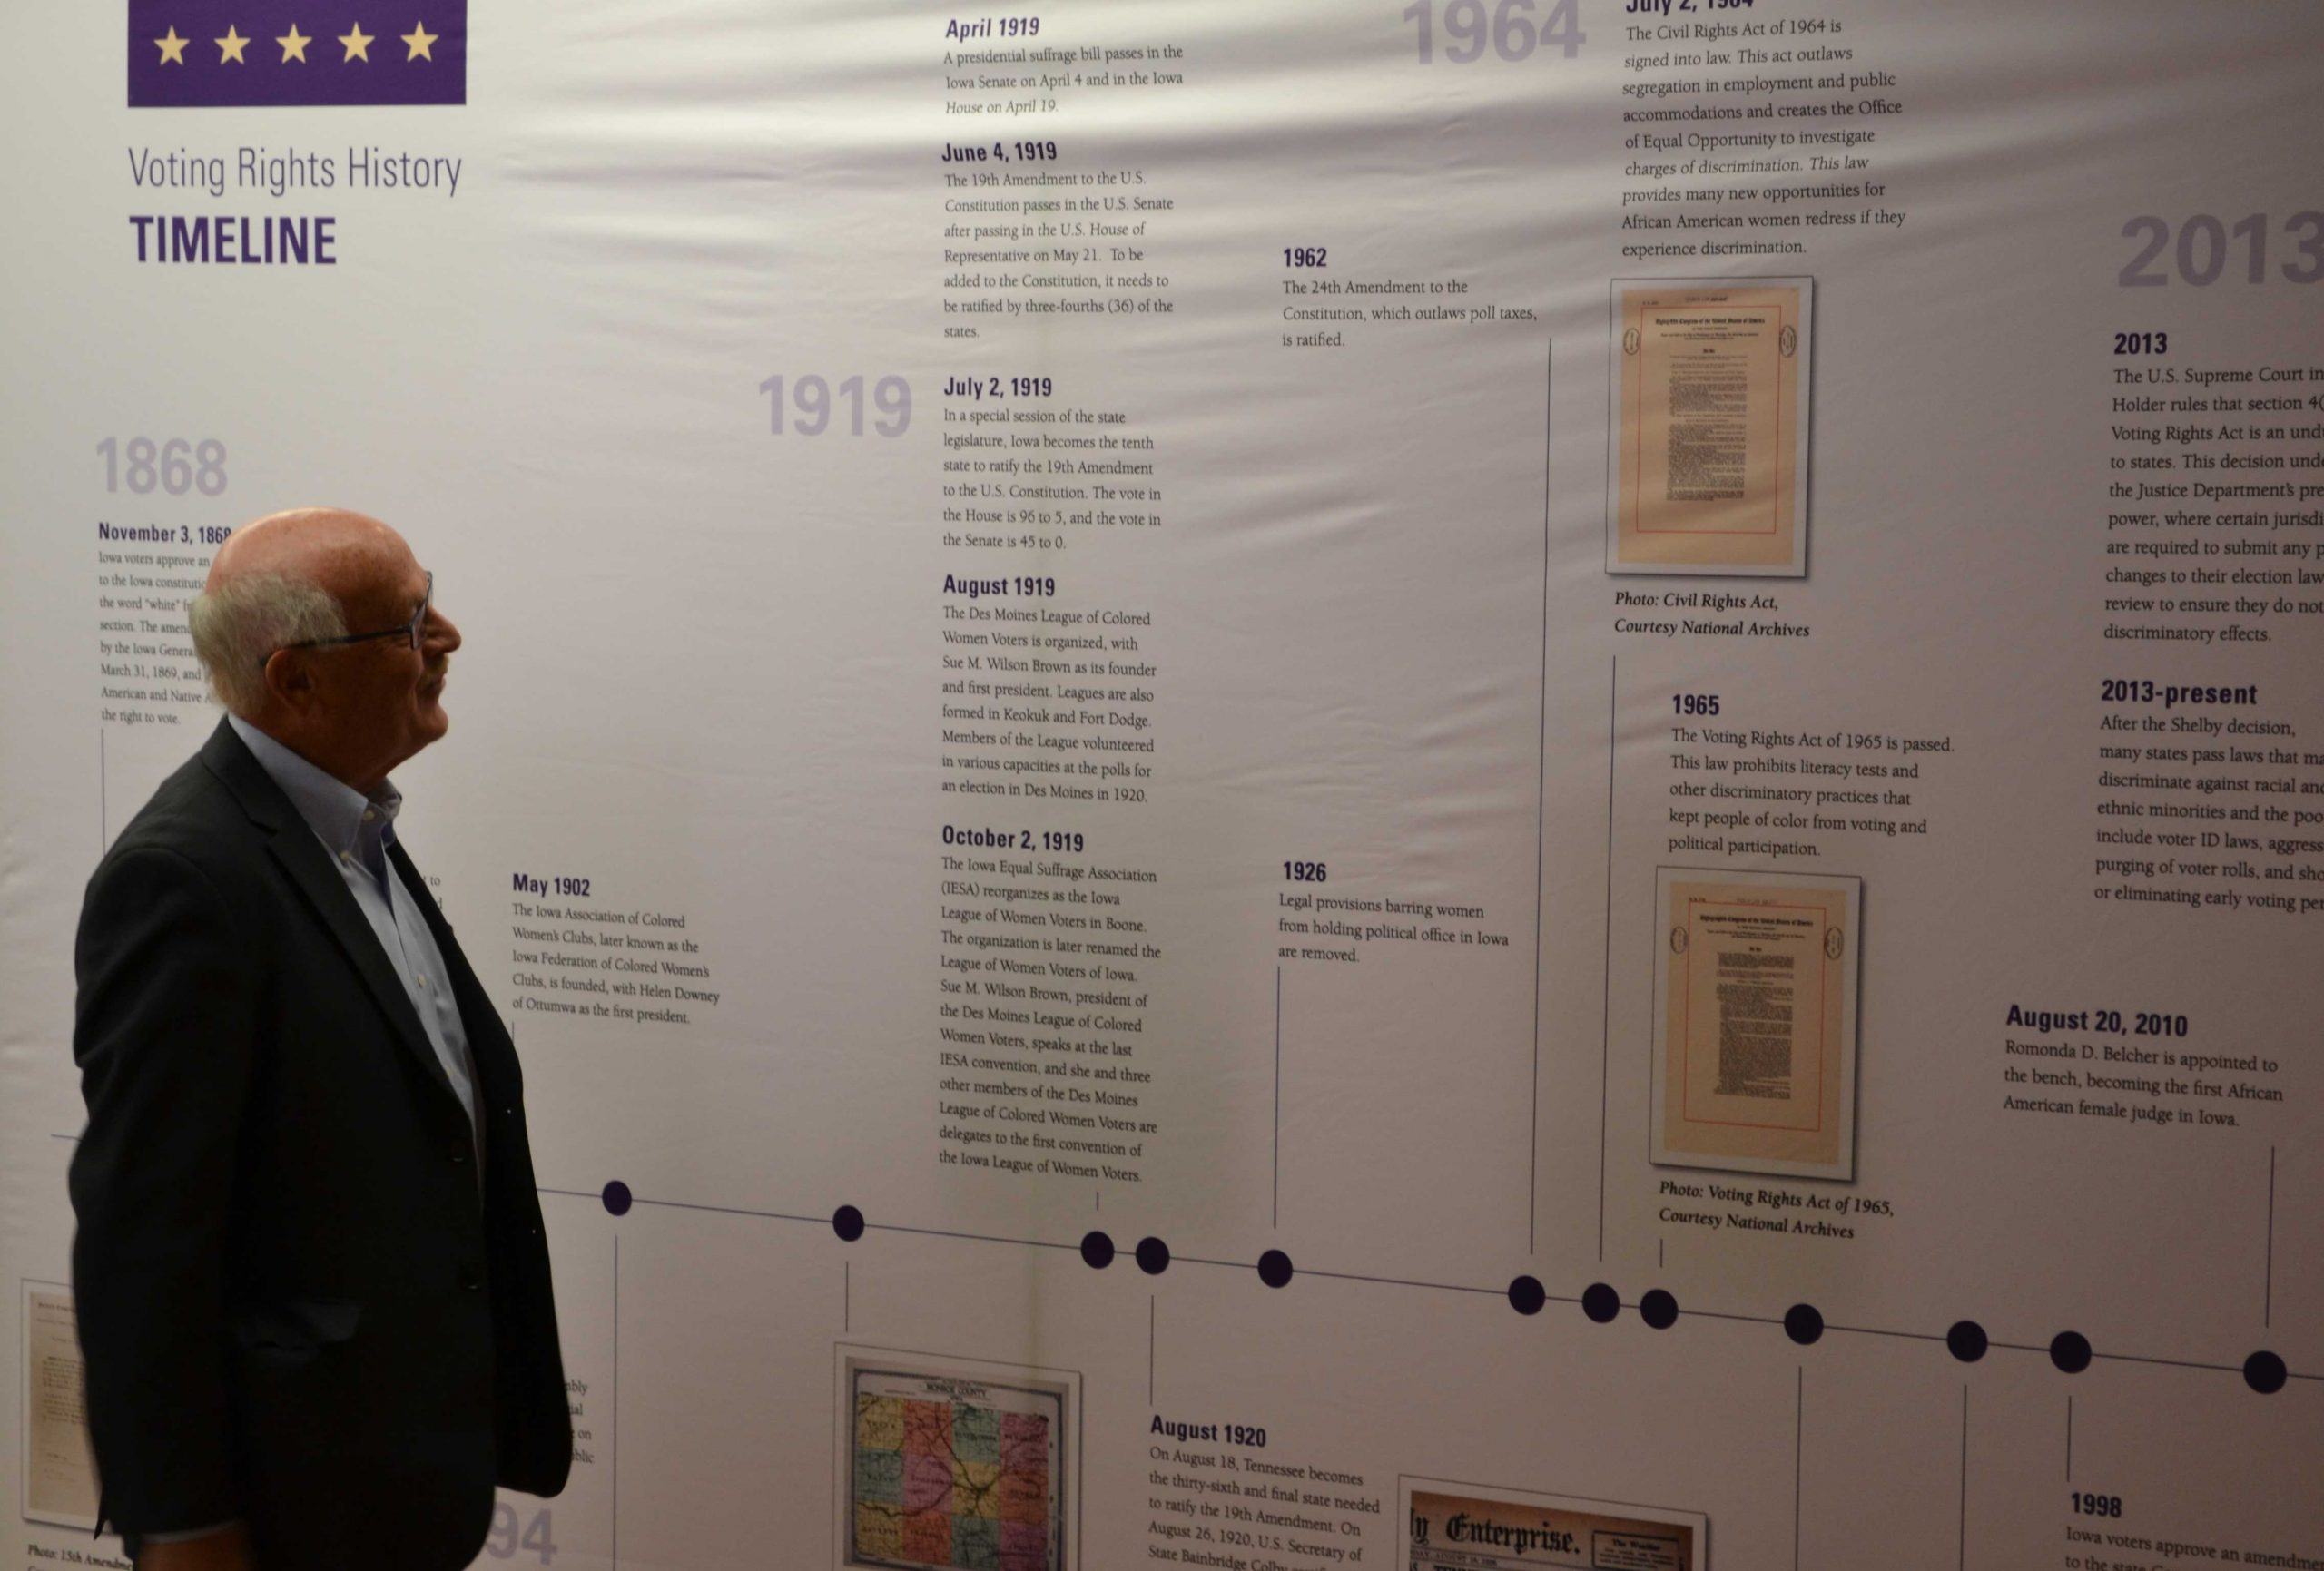 Visitor at the Feb. 14 kickoff reading the timeline in the 'Toward a Universal Suffrage' display